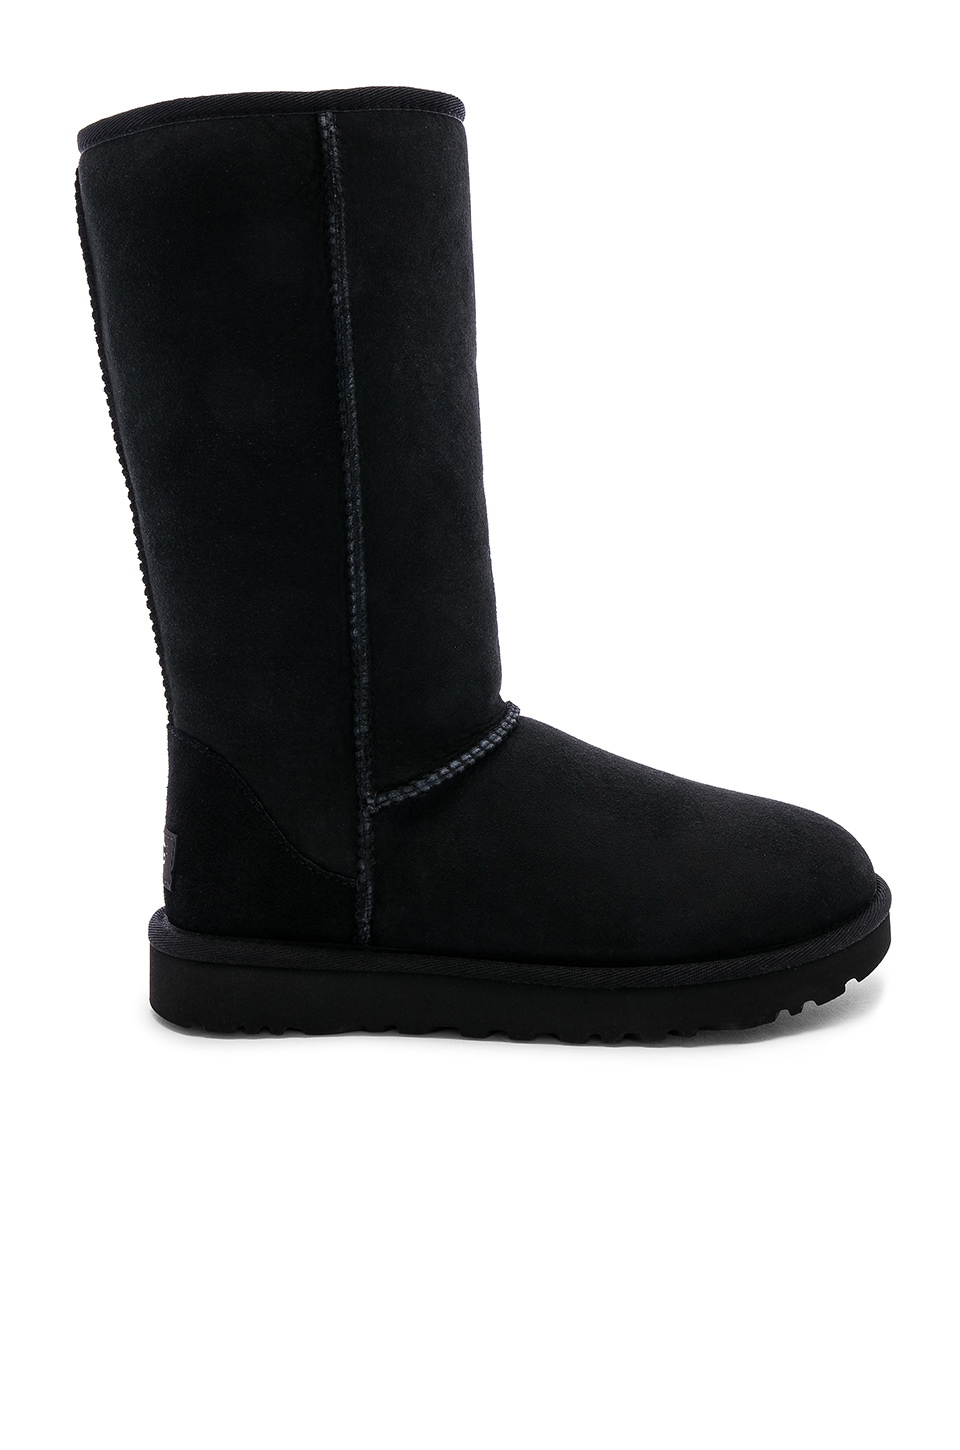 UGG Classic Tall II Boot in Black